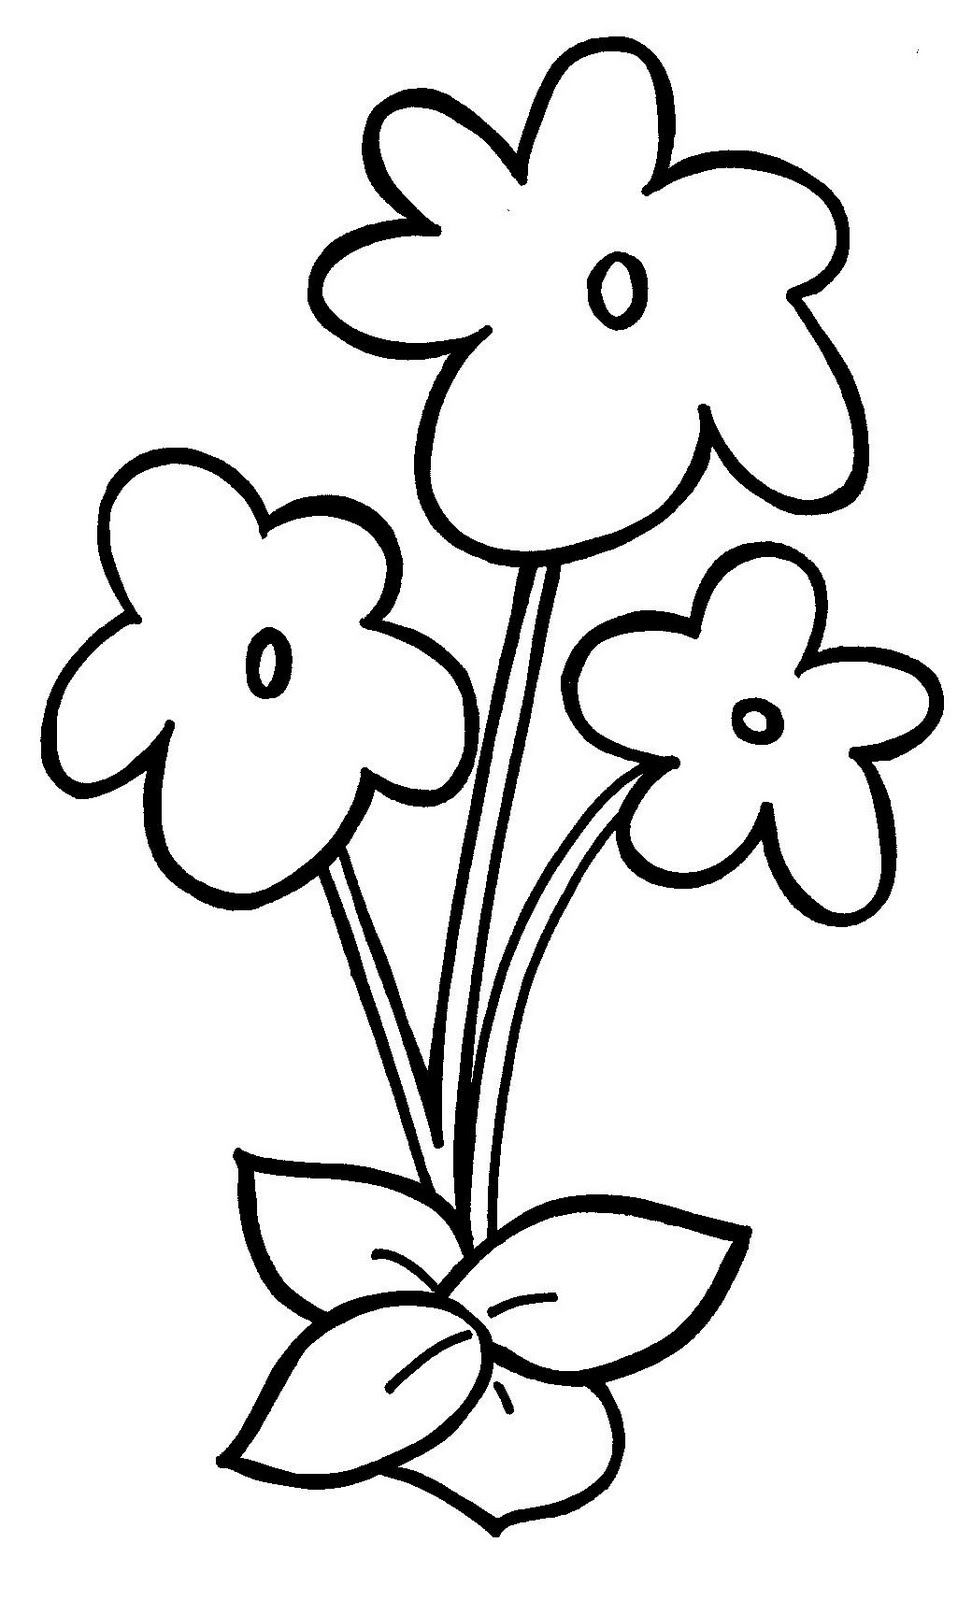 Flower Template Preschool - ClipArt Best